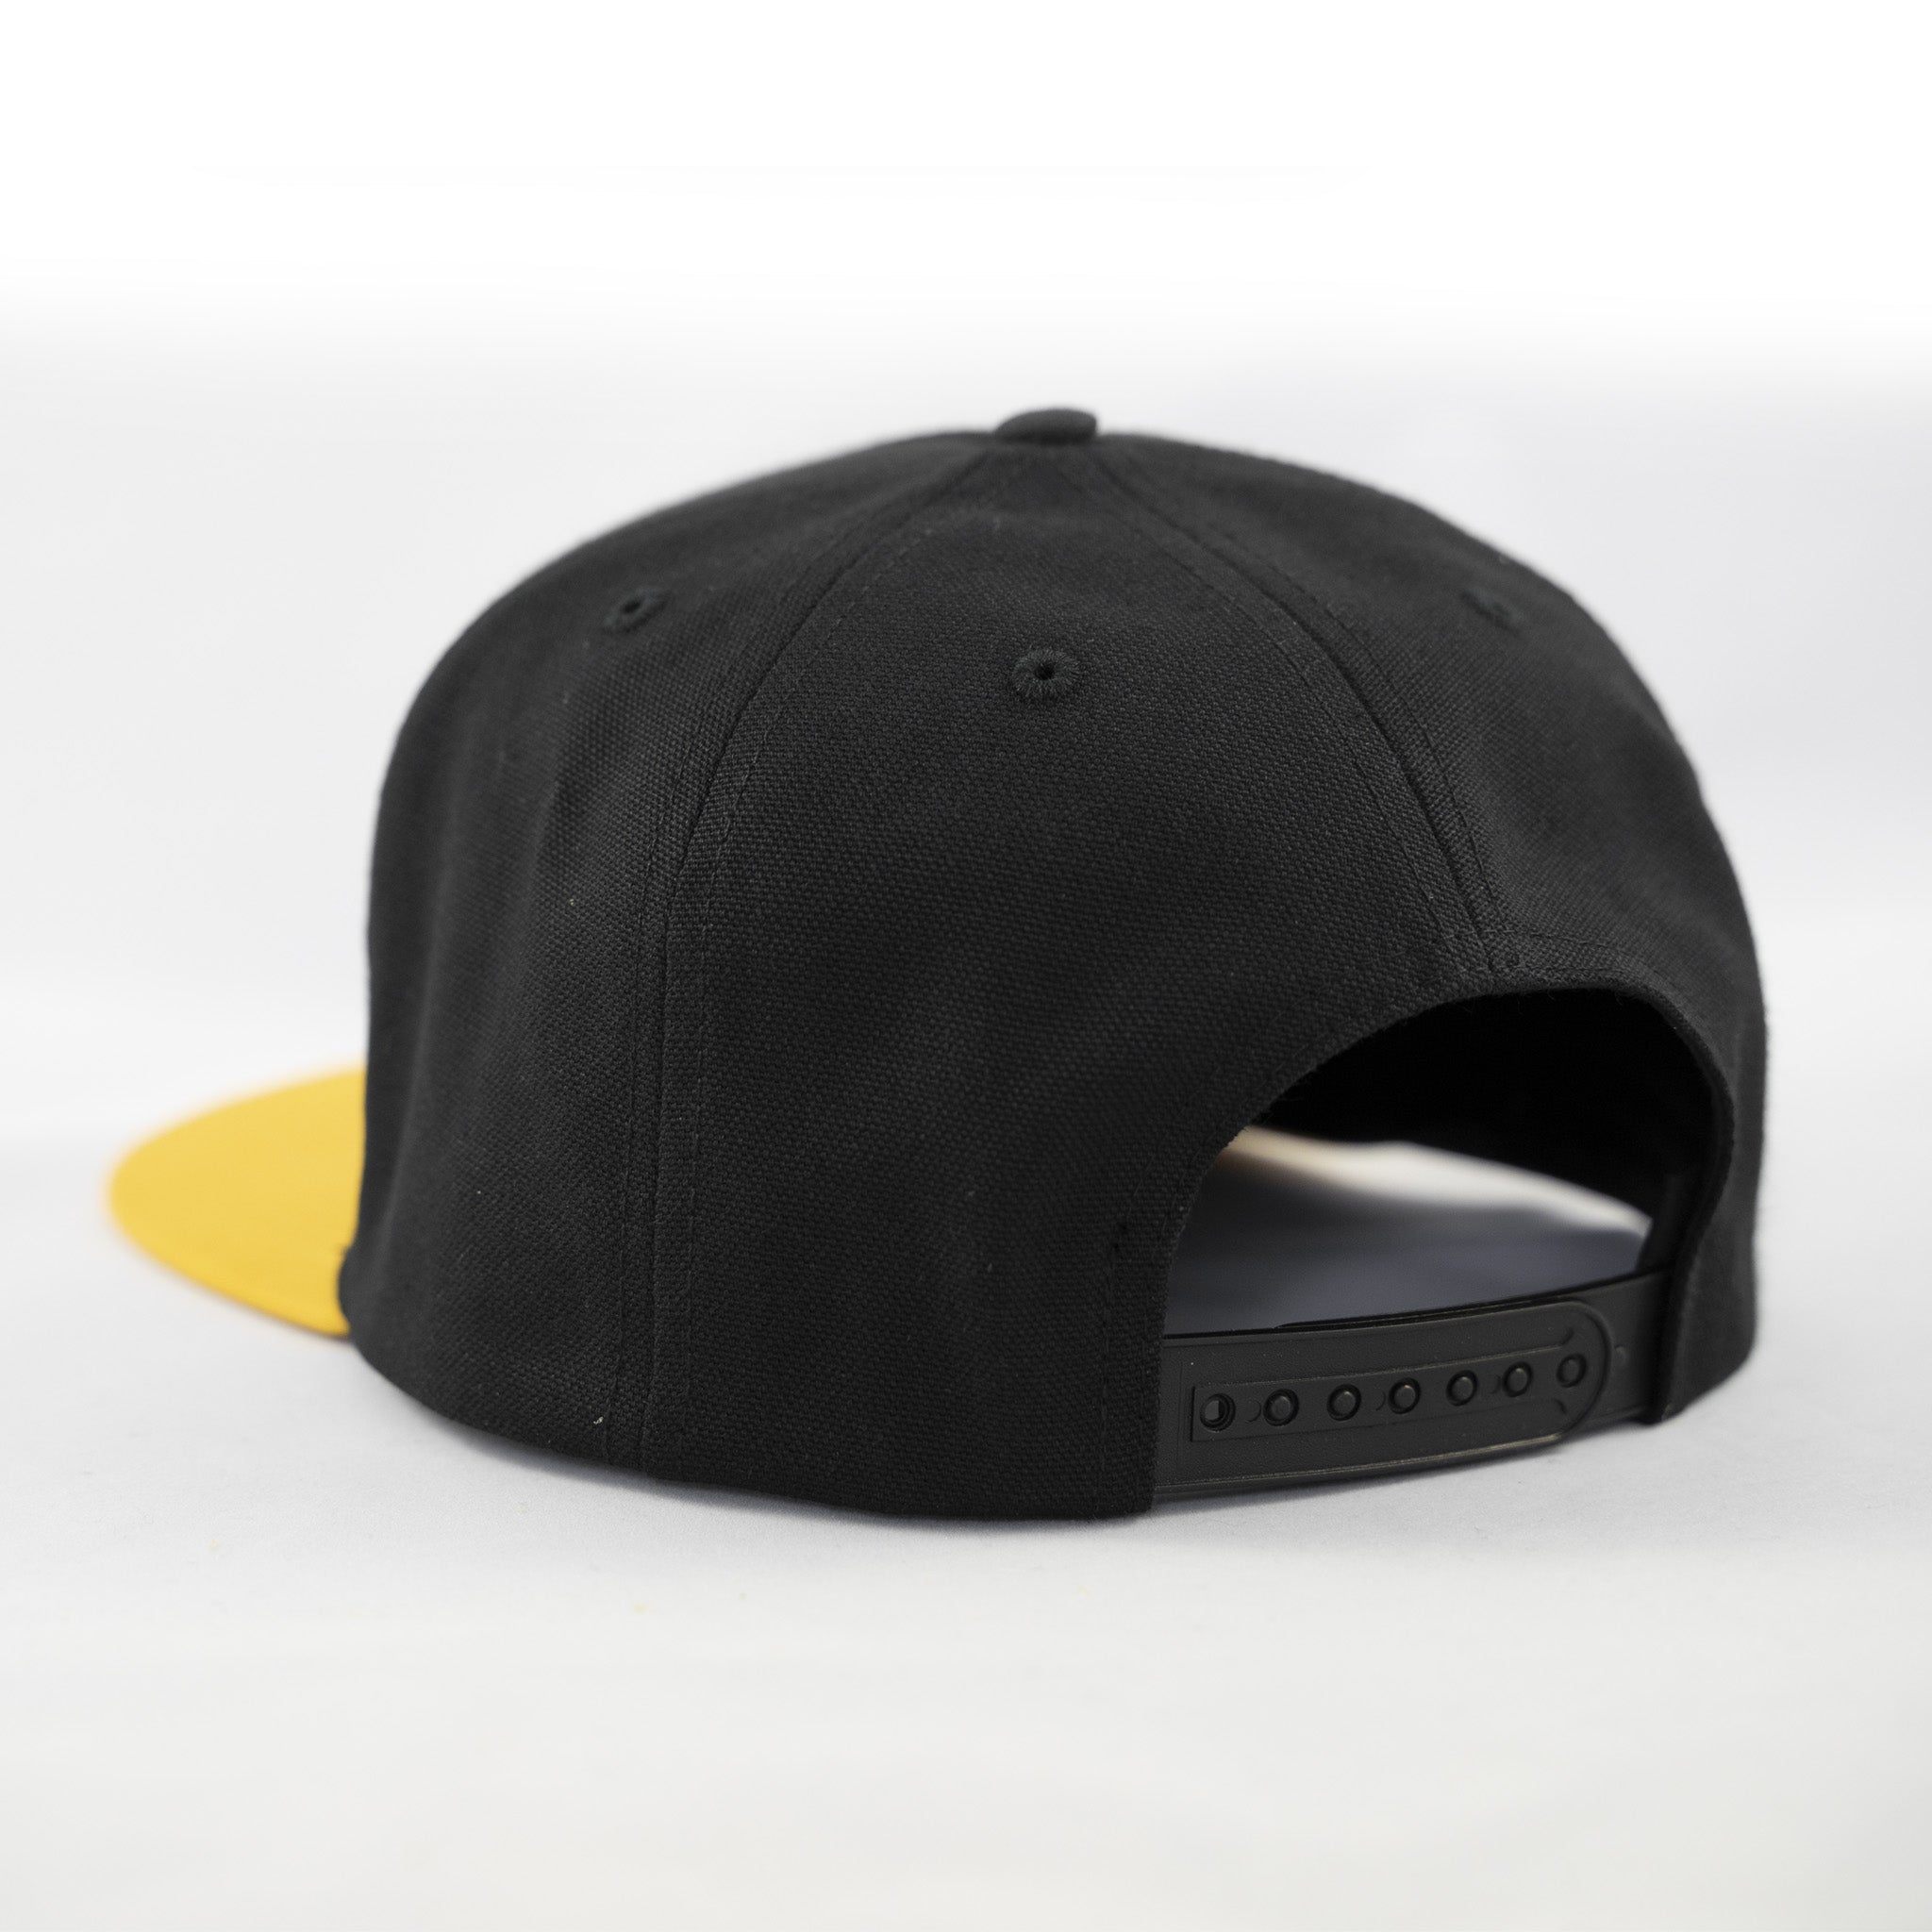 SB Cap 5P - Black Patch